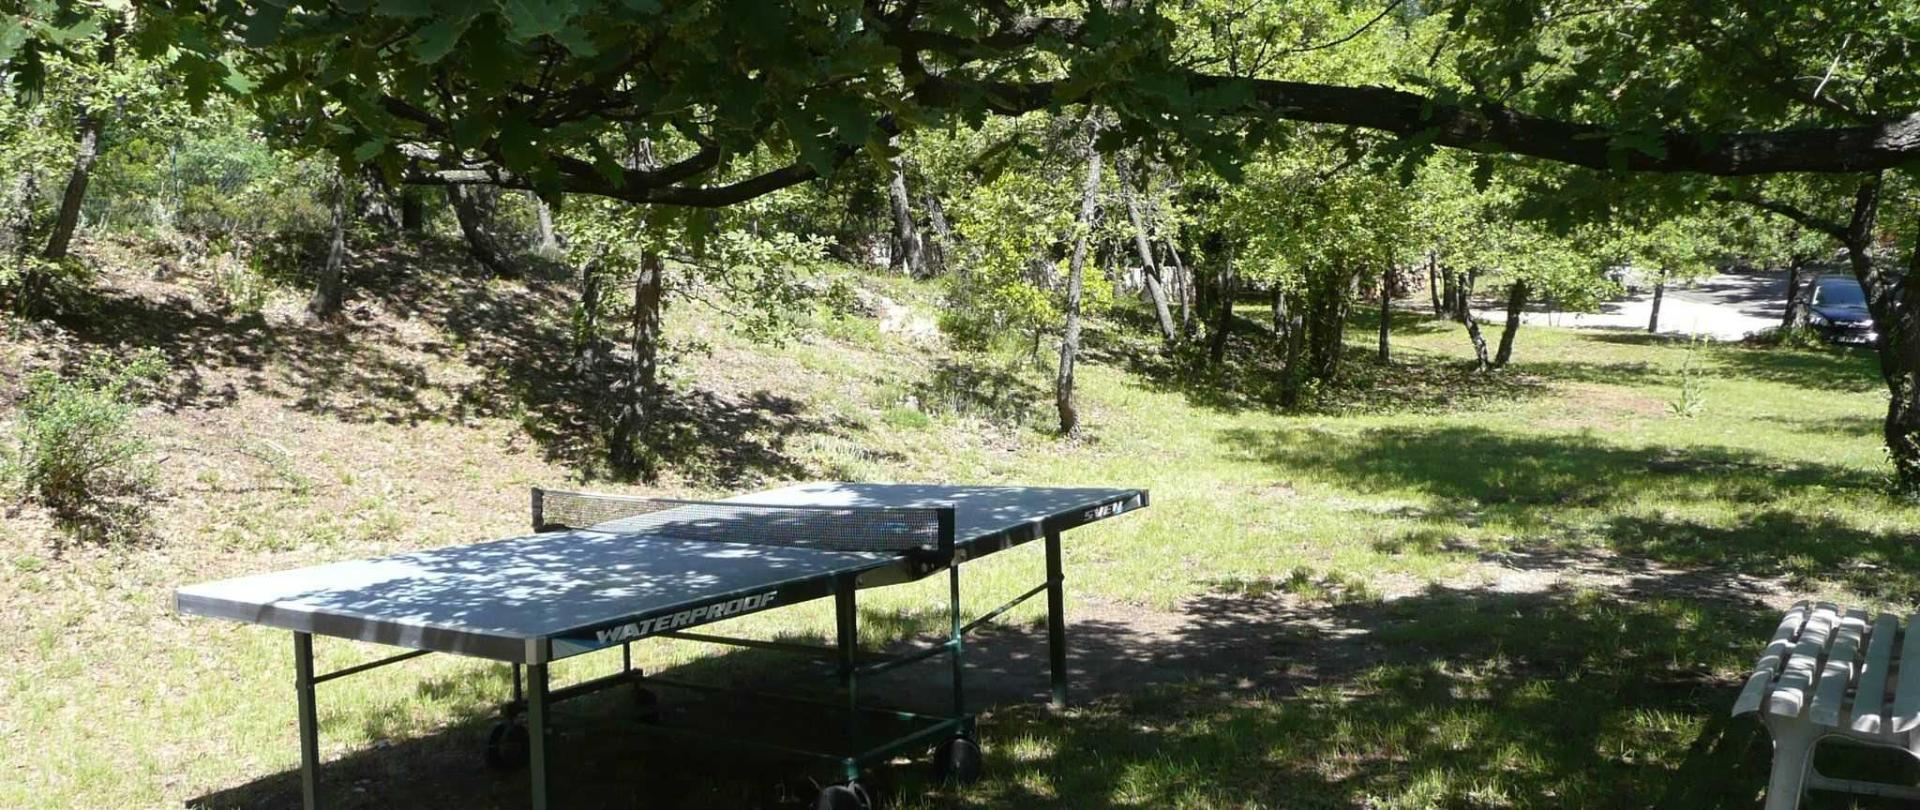 Table de ping pong.JPG